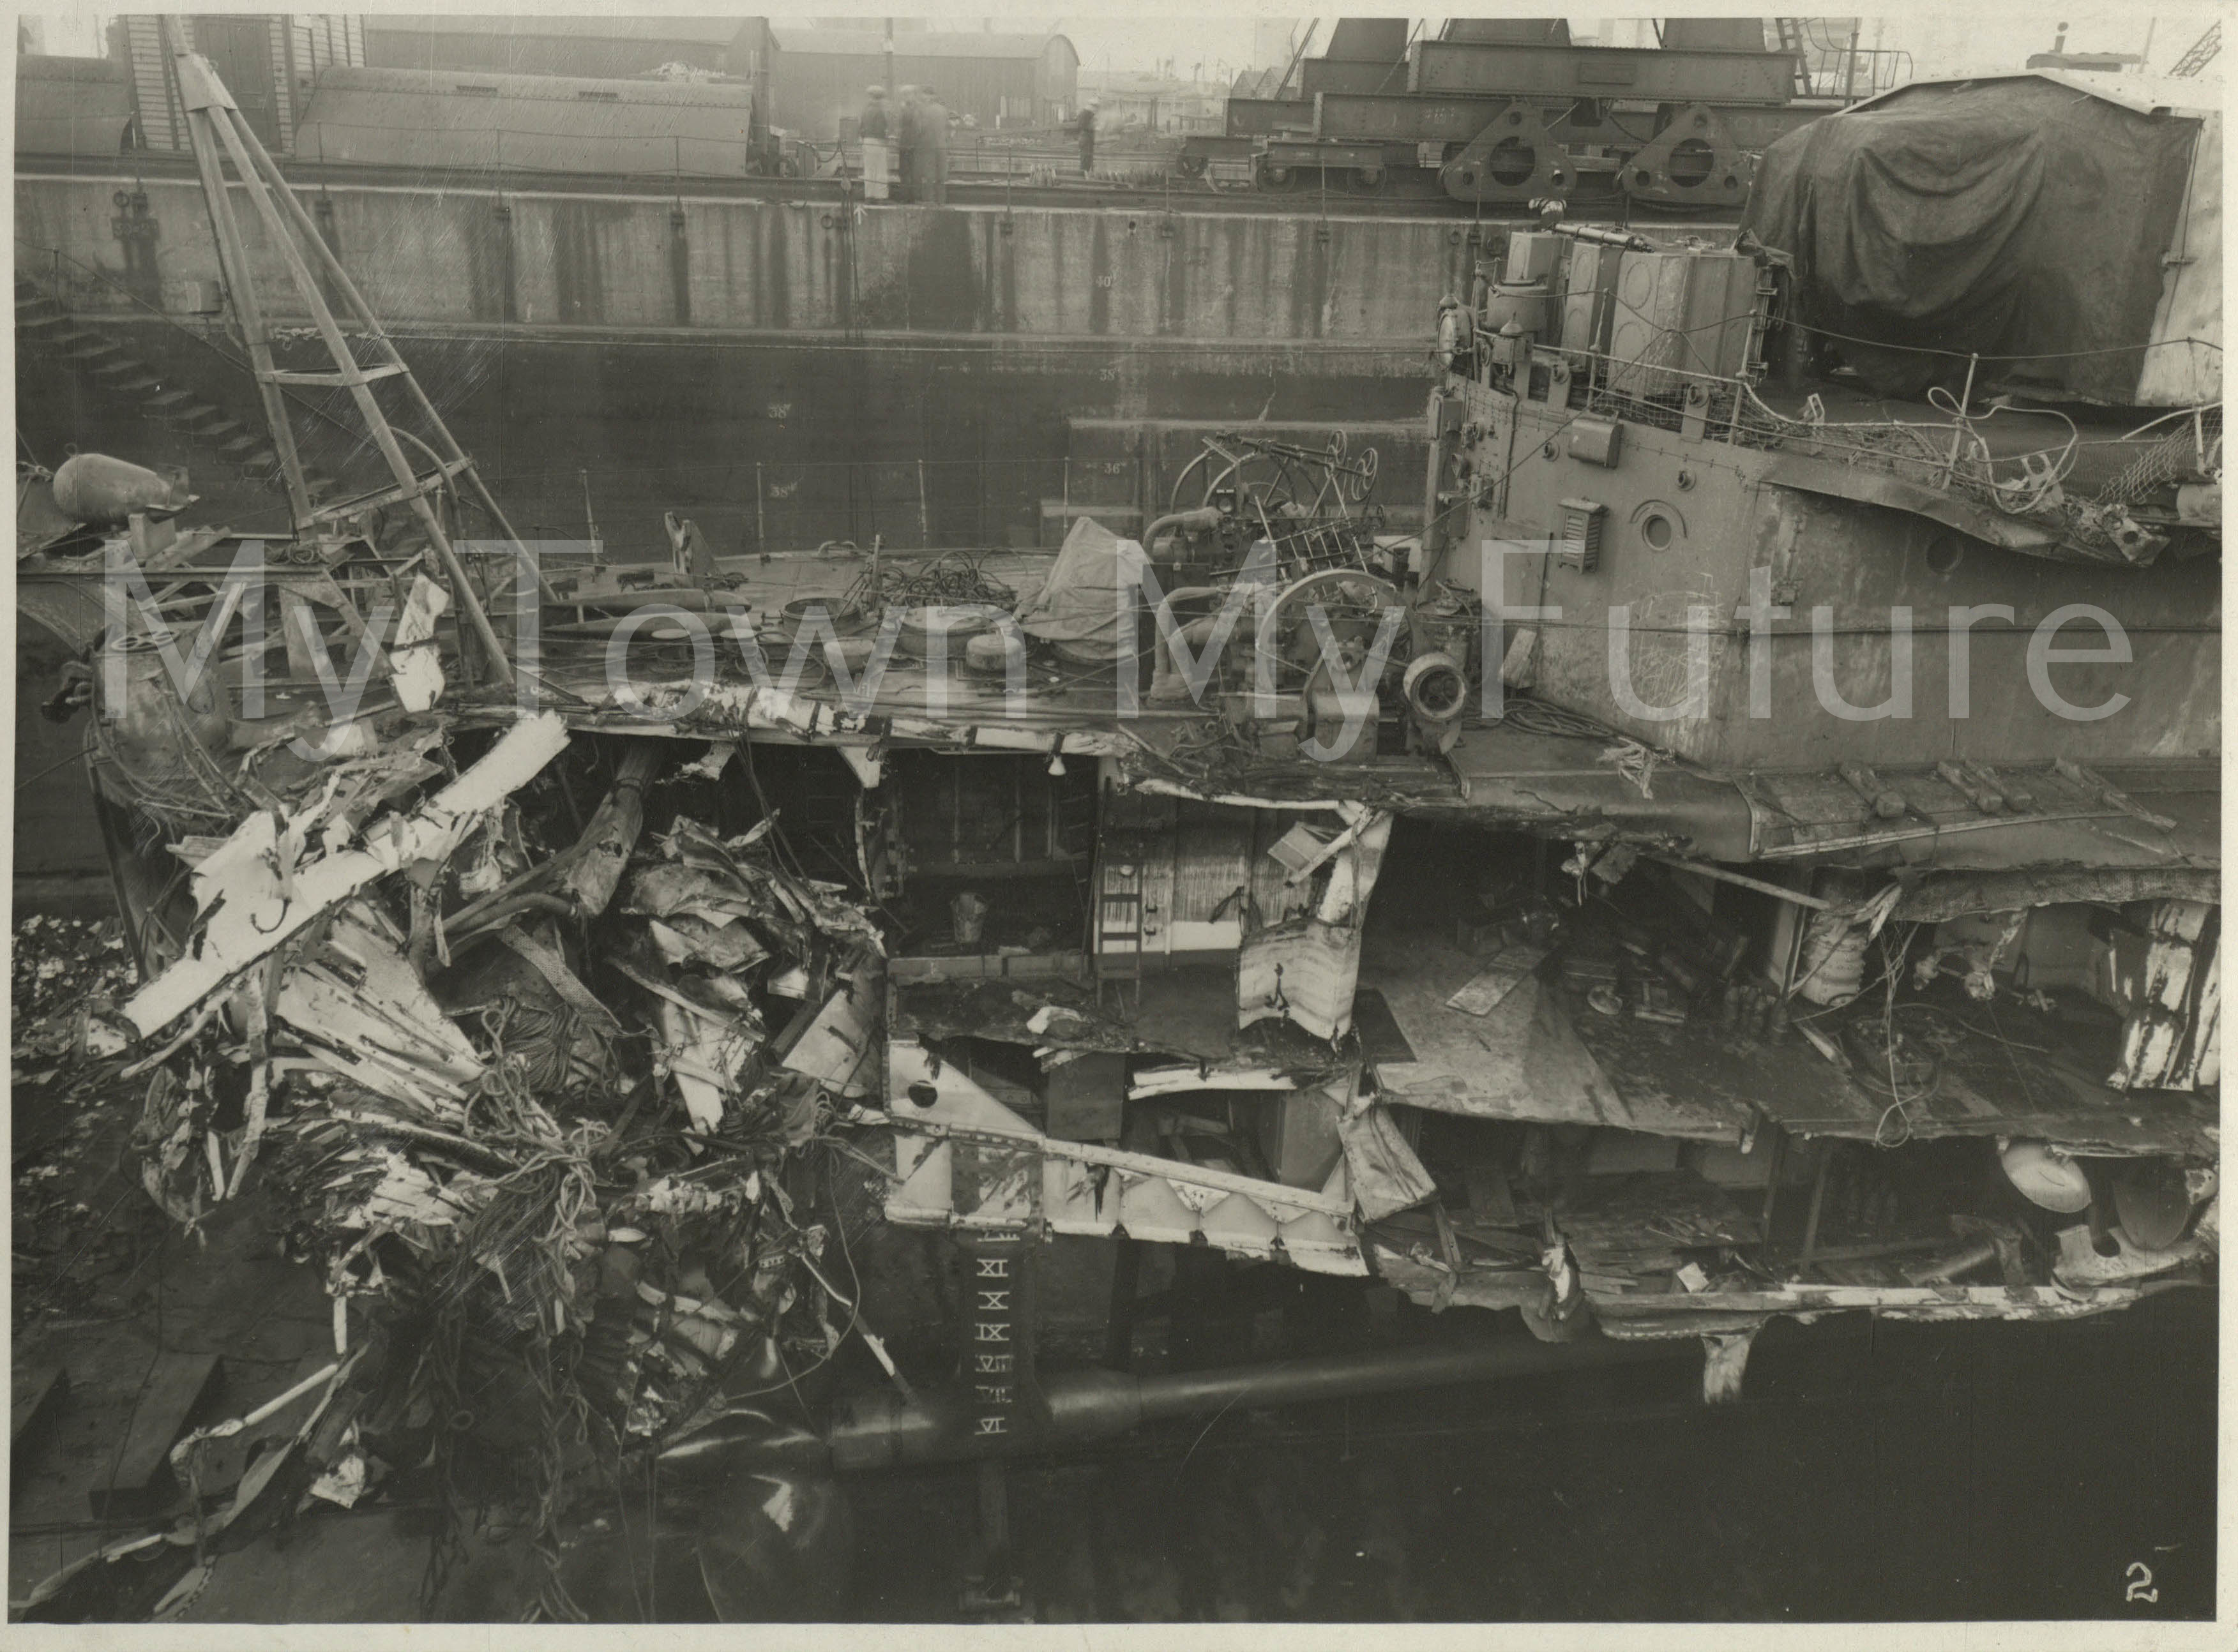 Smith's Dock Ships - HMS Javelin - WWII repair collision damage